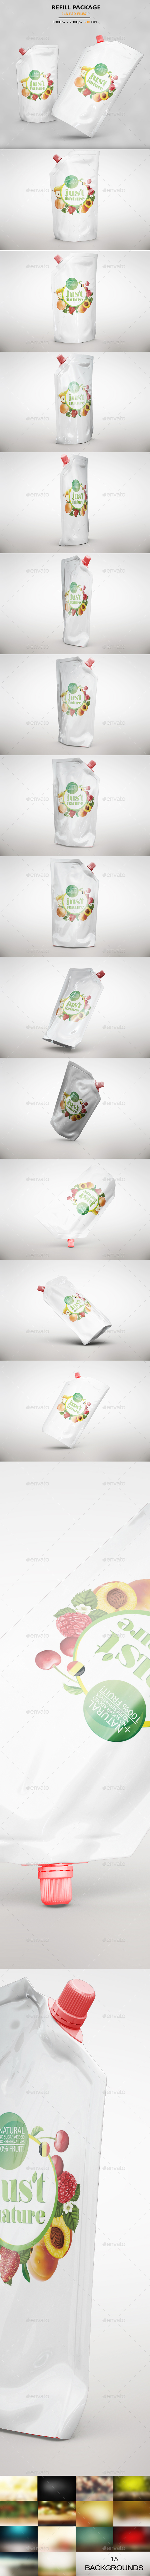 Refill Package MockUp - Miscellaneous Packaging